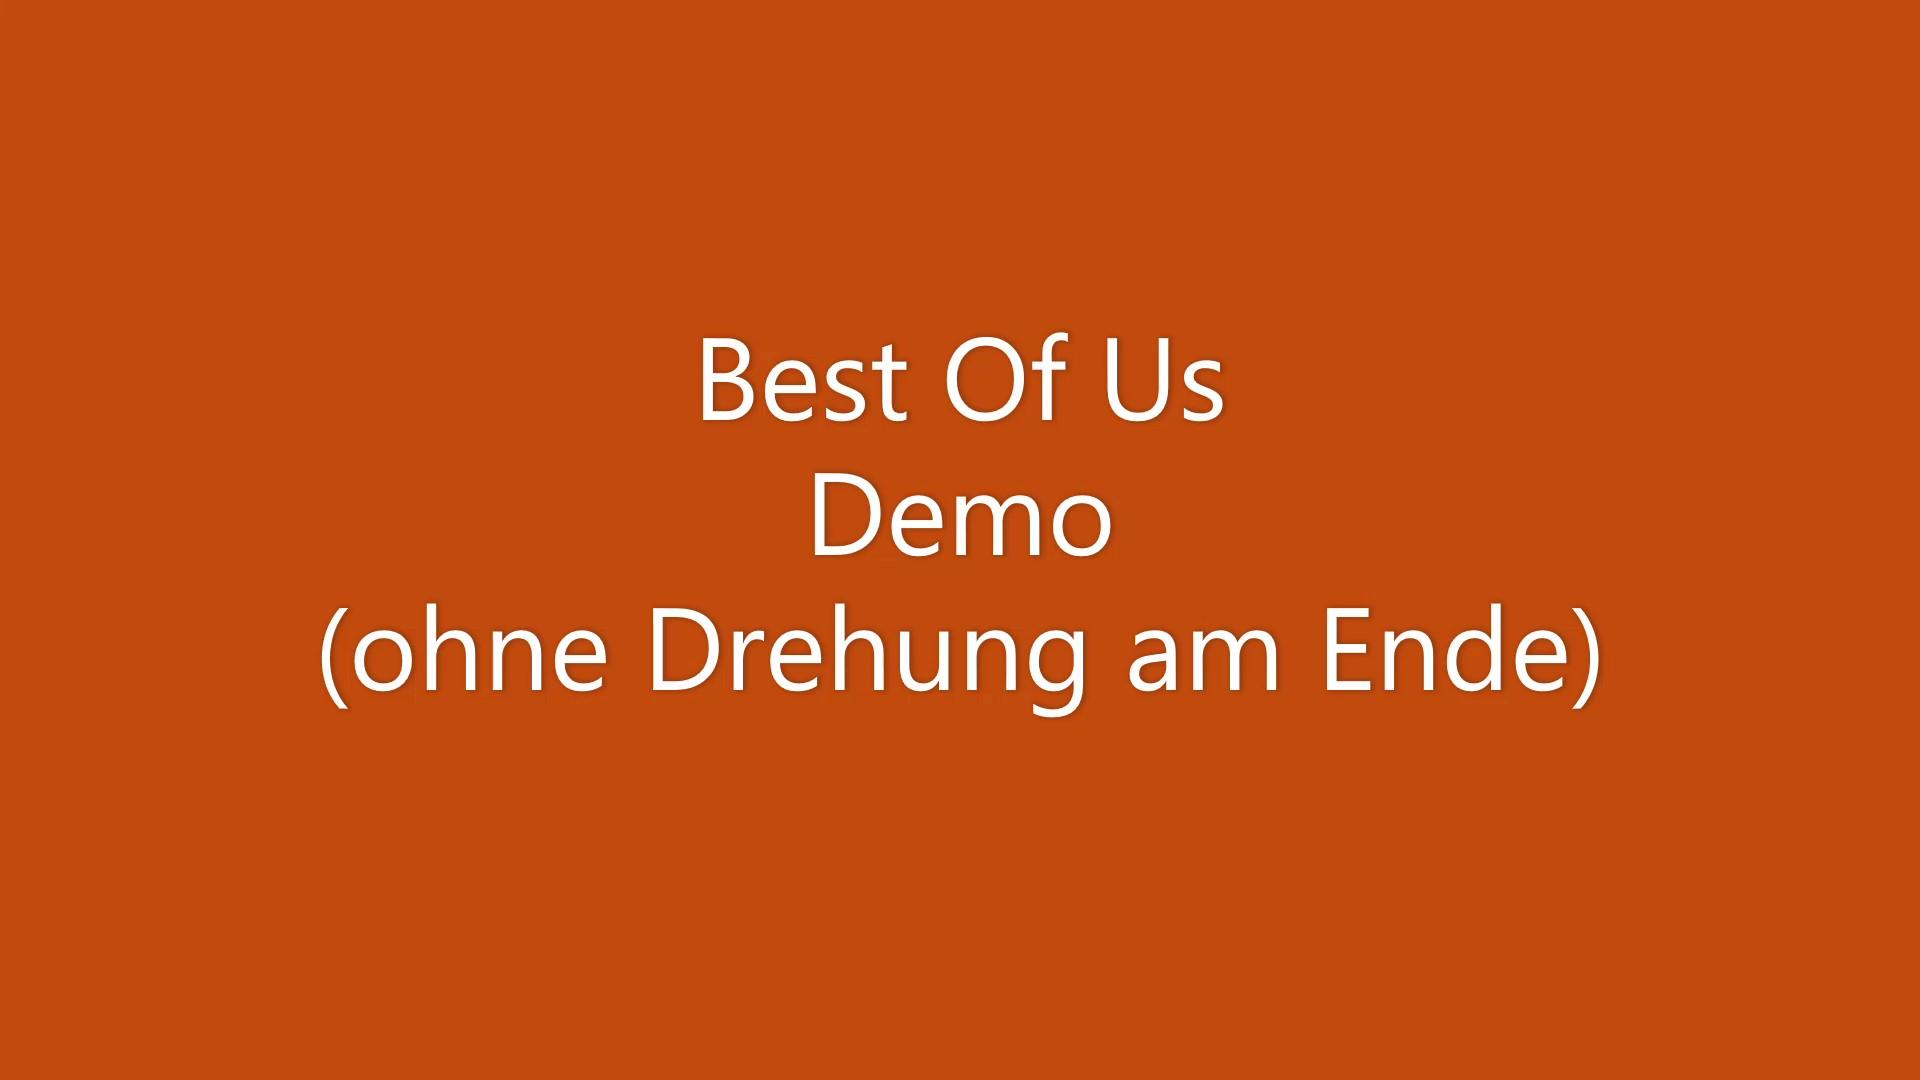 Best Of Us Demo